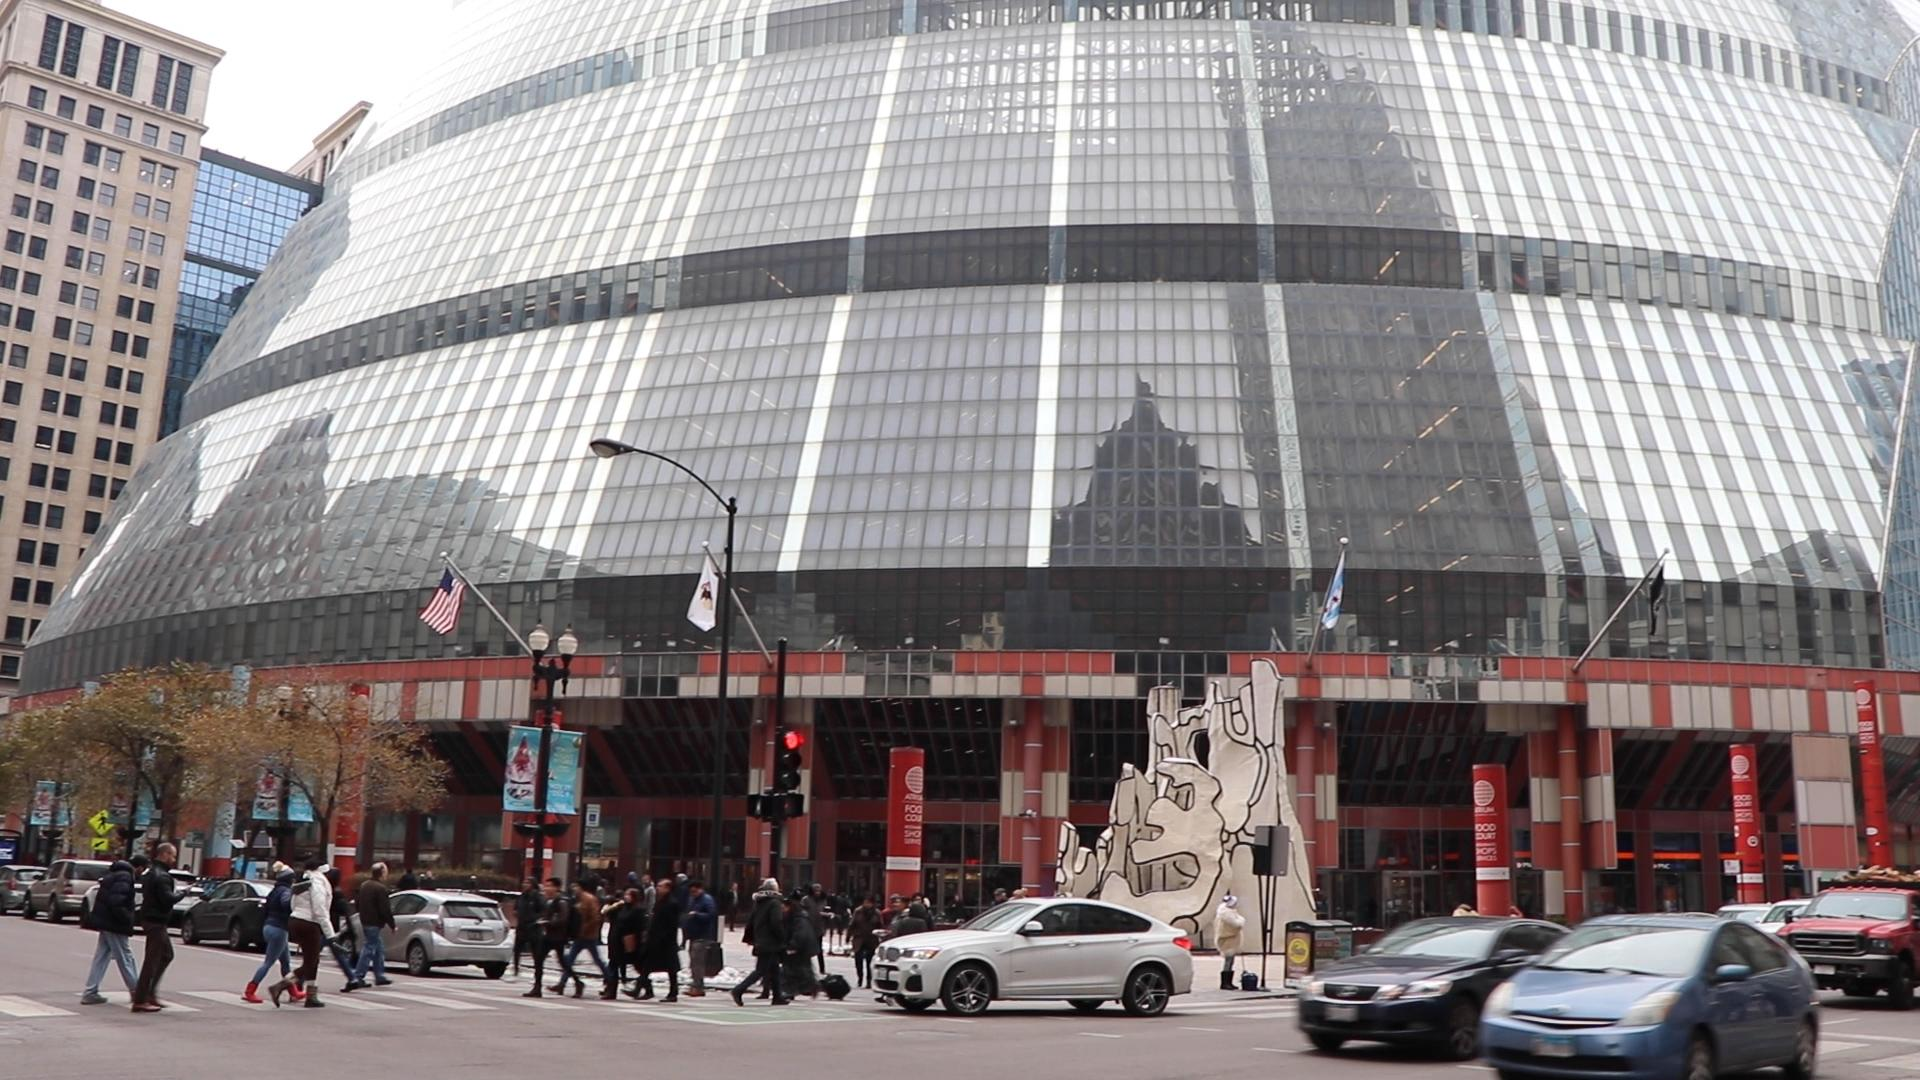 Located at 100 W. Randolph St., the James R. Thompson Center houses state government offices in Chicago. (Evan Garcia / WTTW News)